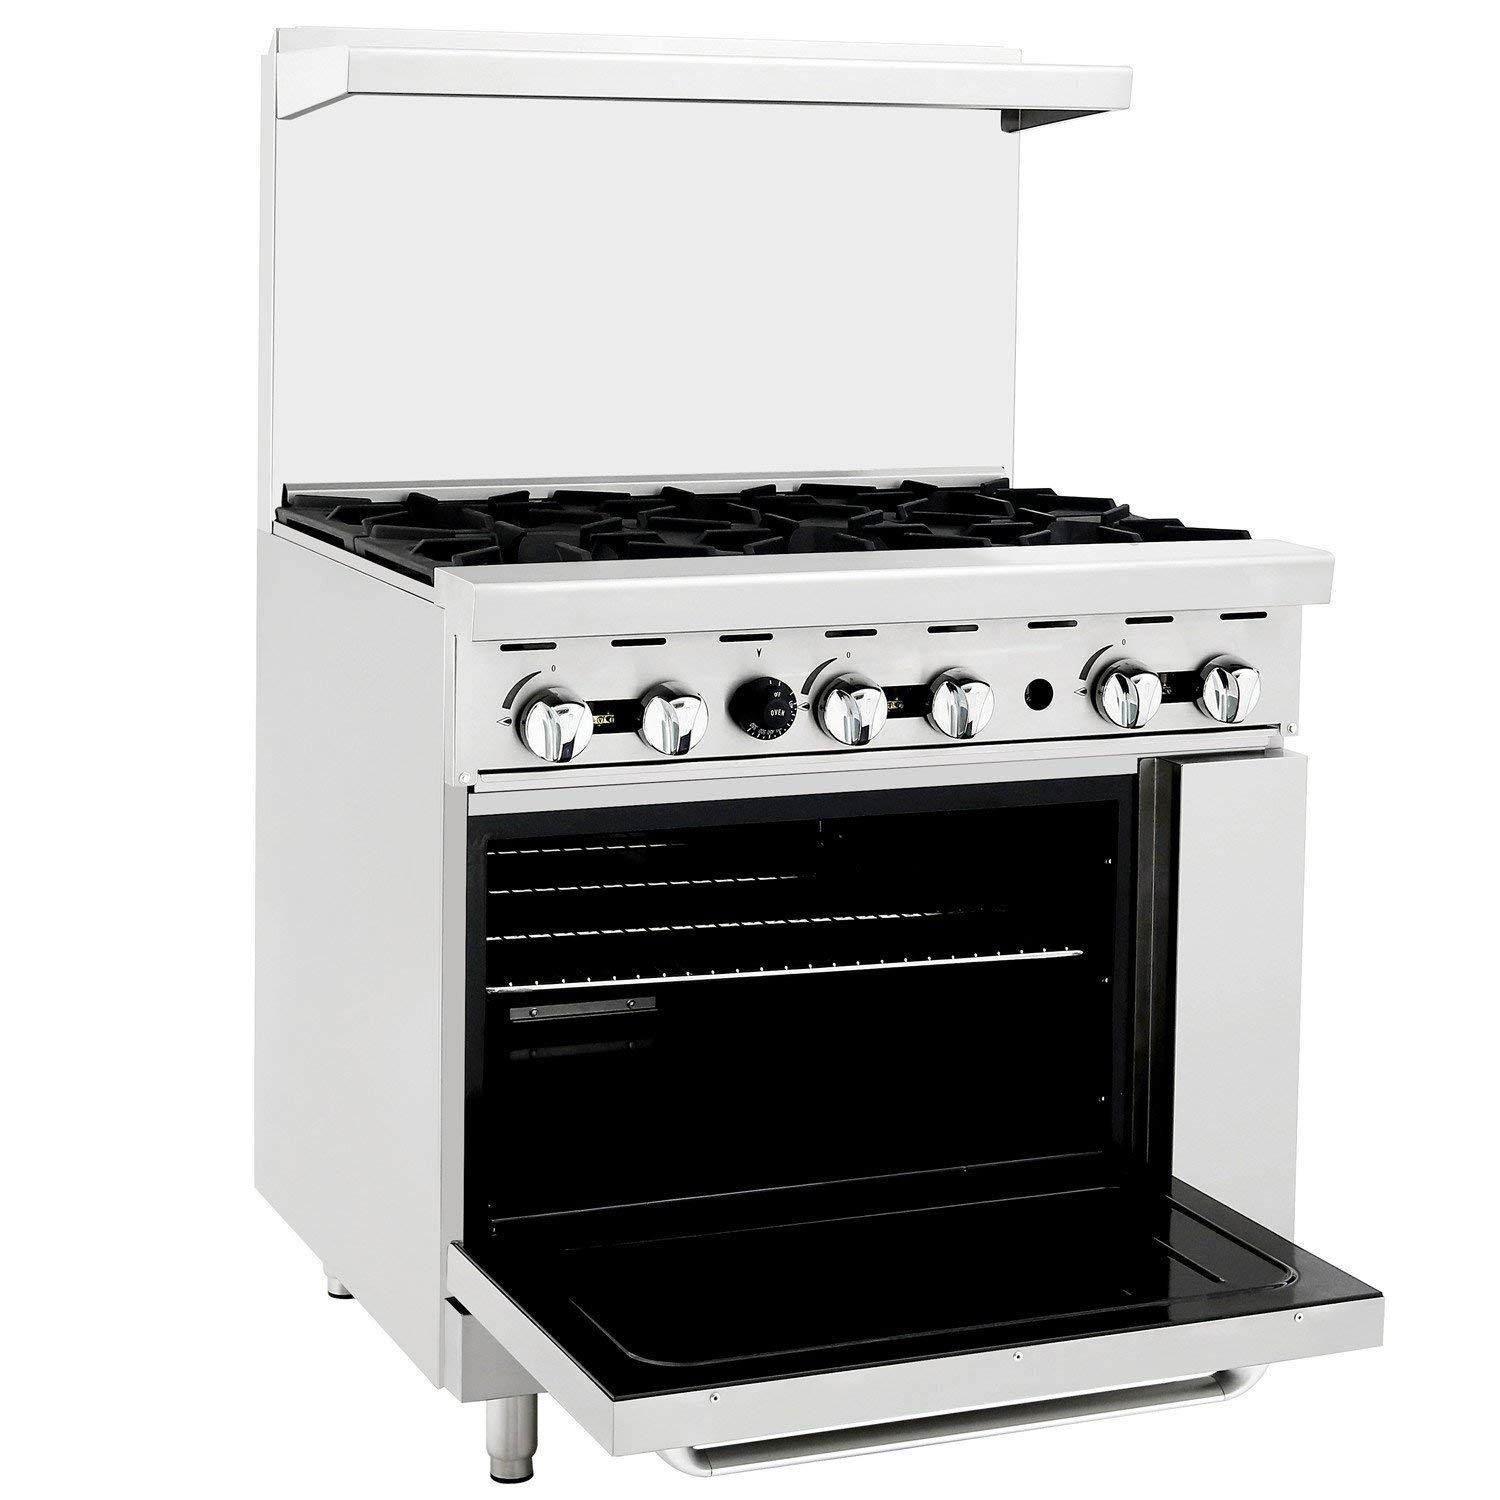 CookRite-ATO-6B-Commercial-Manual-Liquid-Propane-Range-6 -Burner-Hot-Plate-With-1-Standard-Oven-36